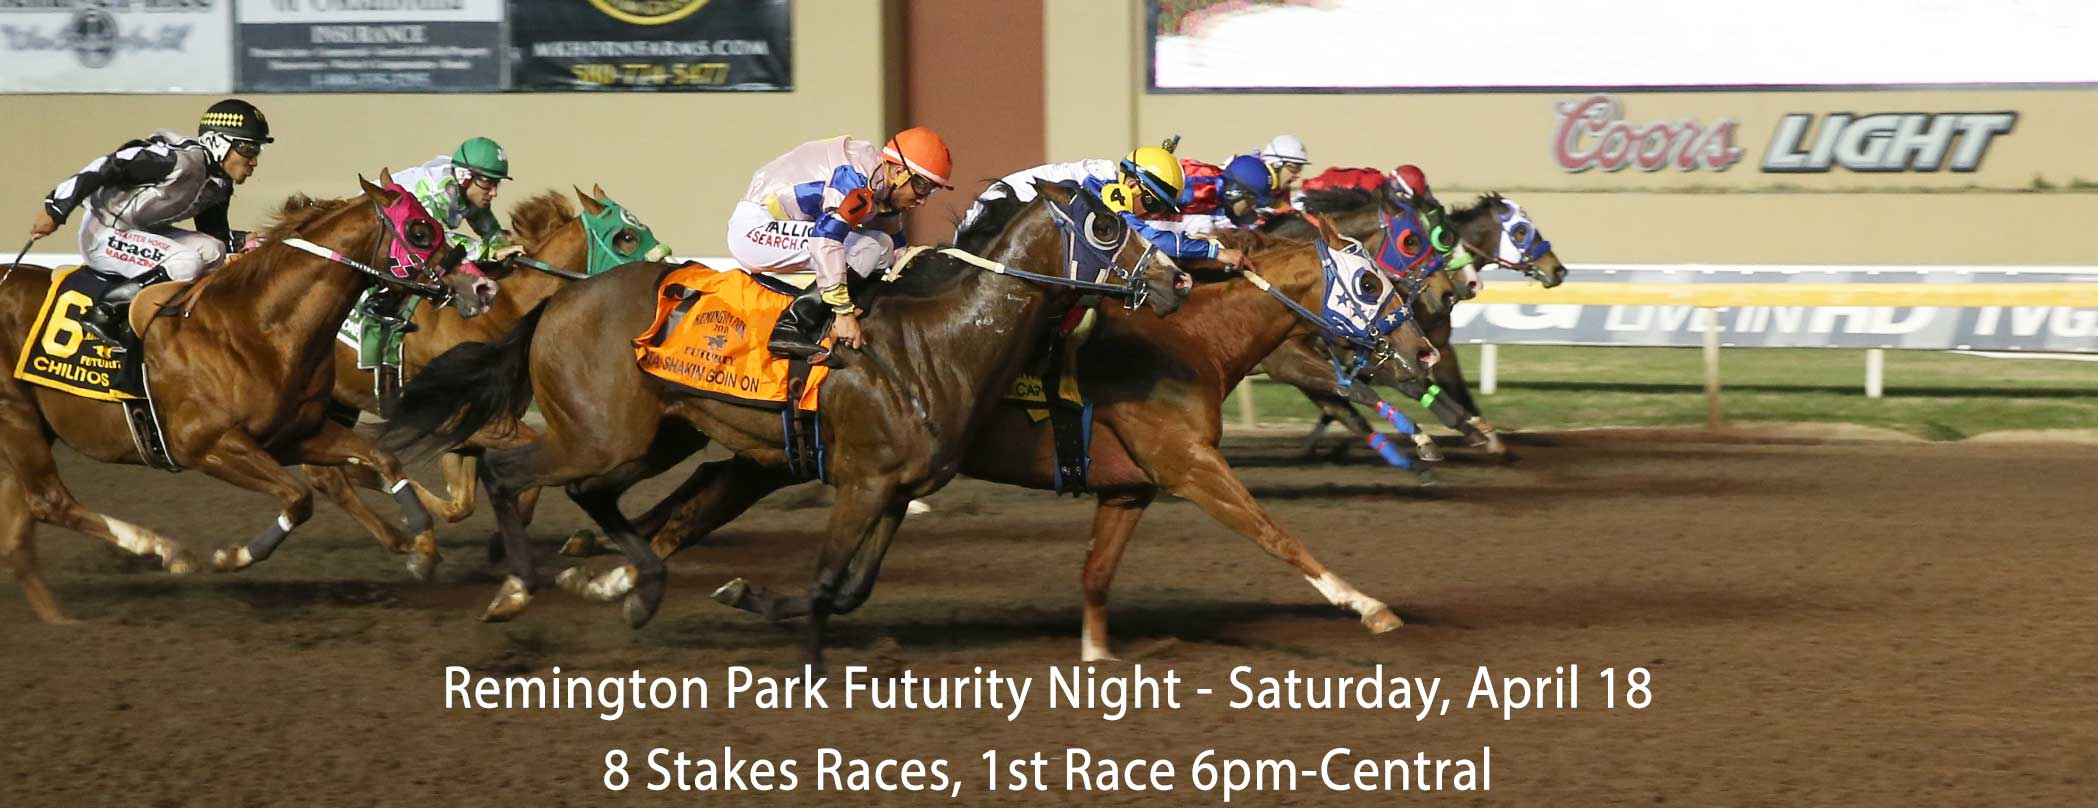 Remington Park Futurity Night